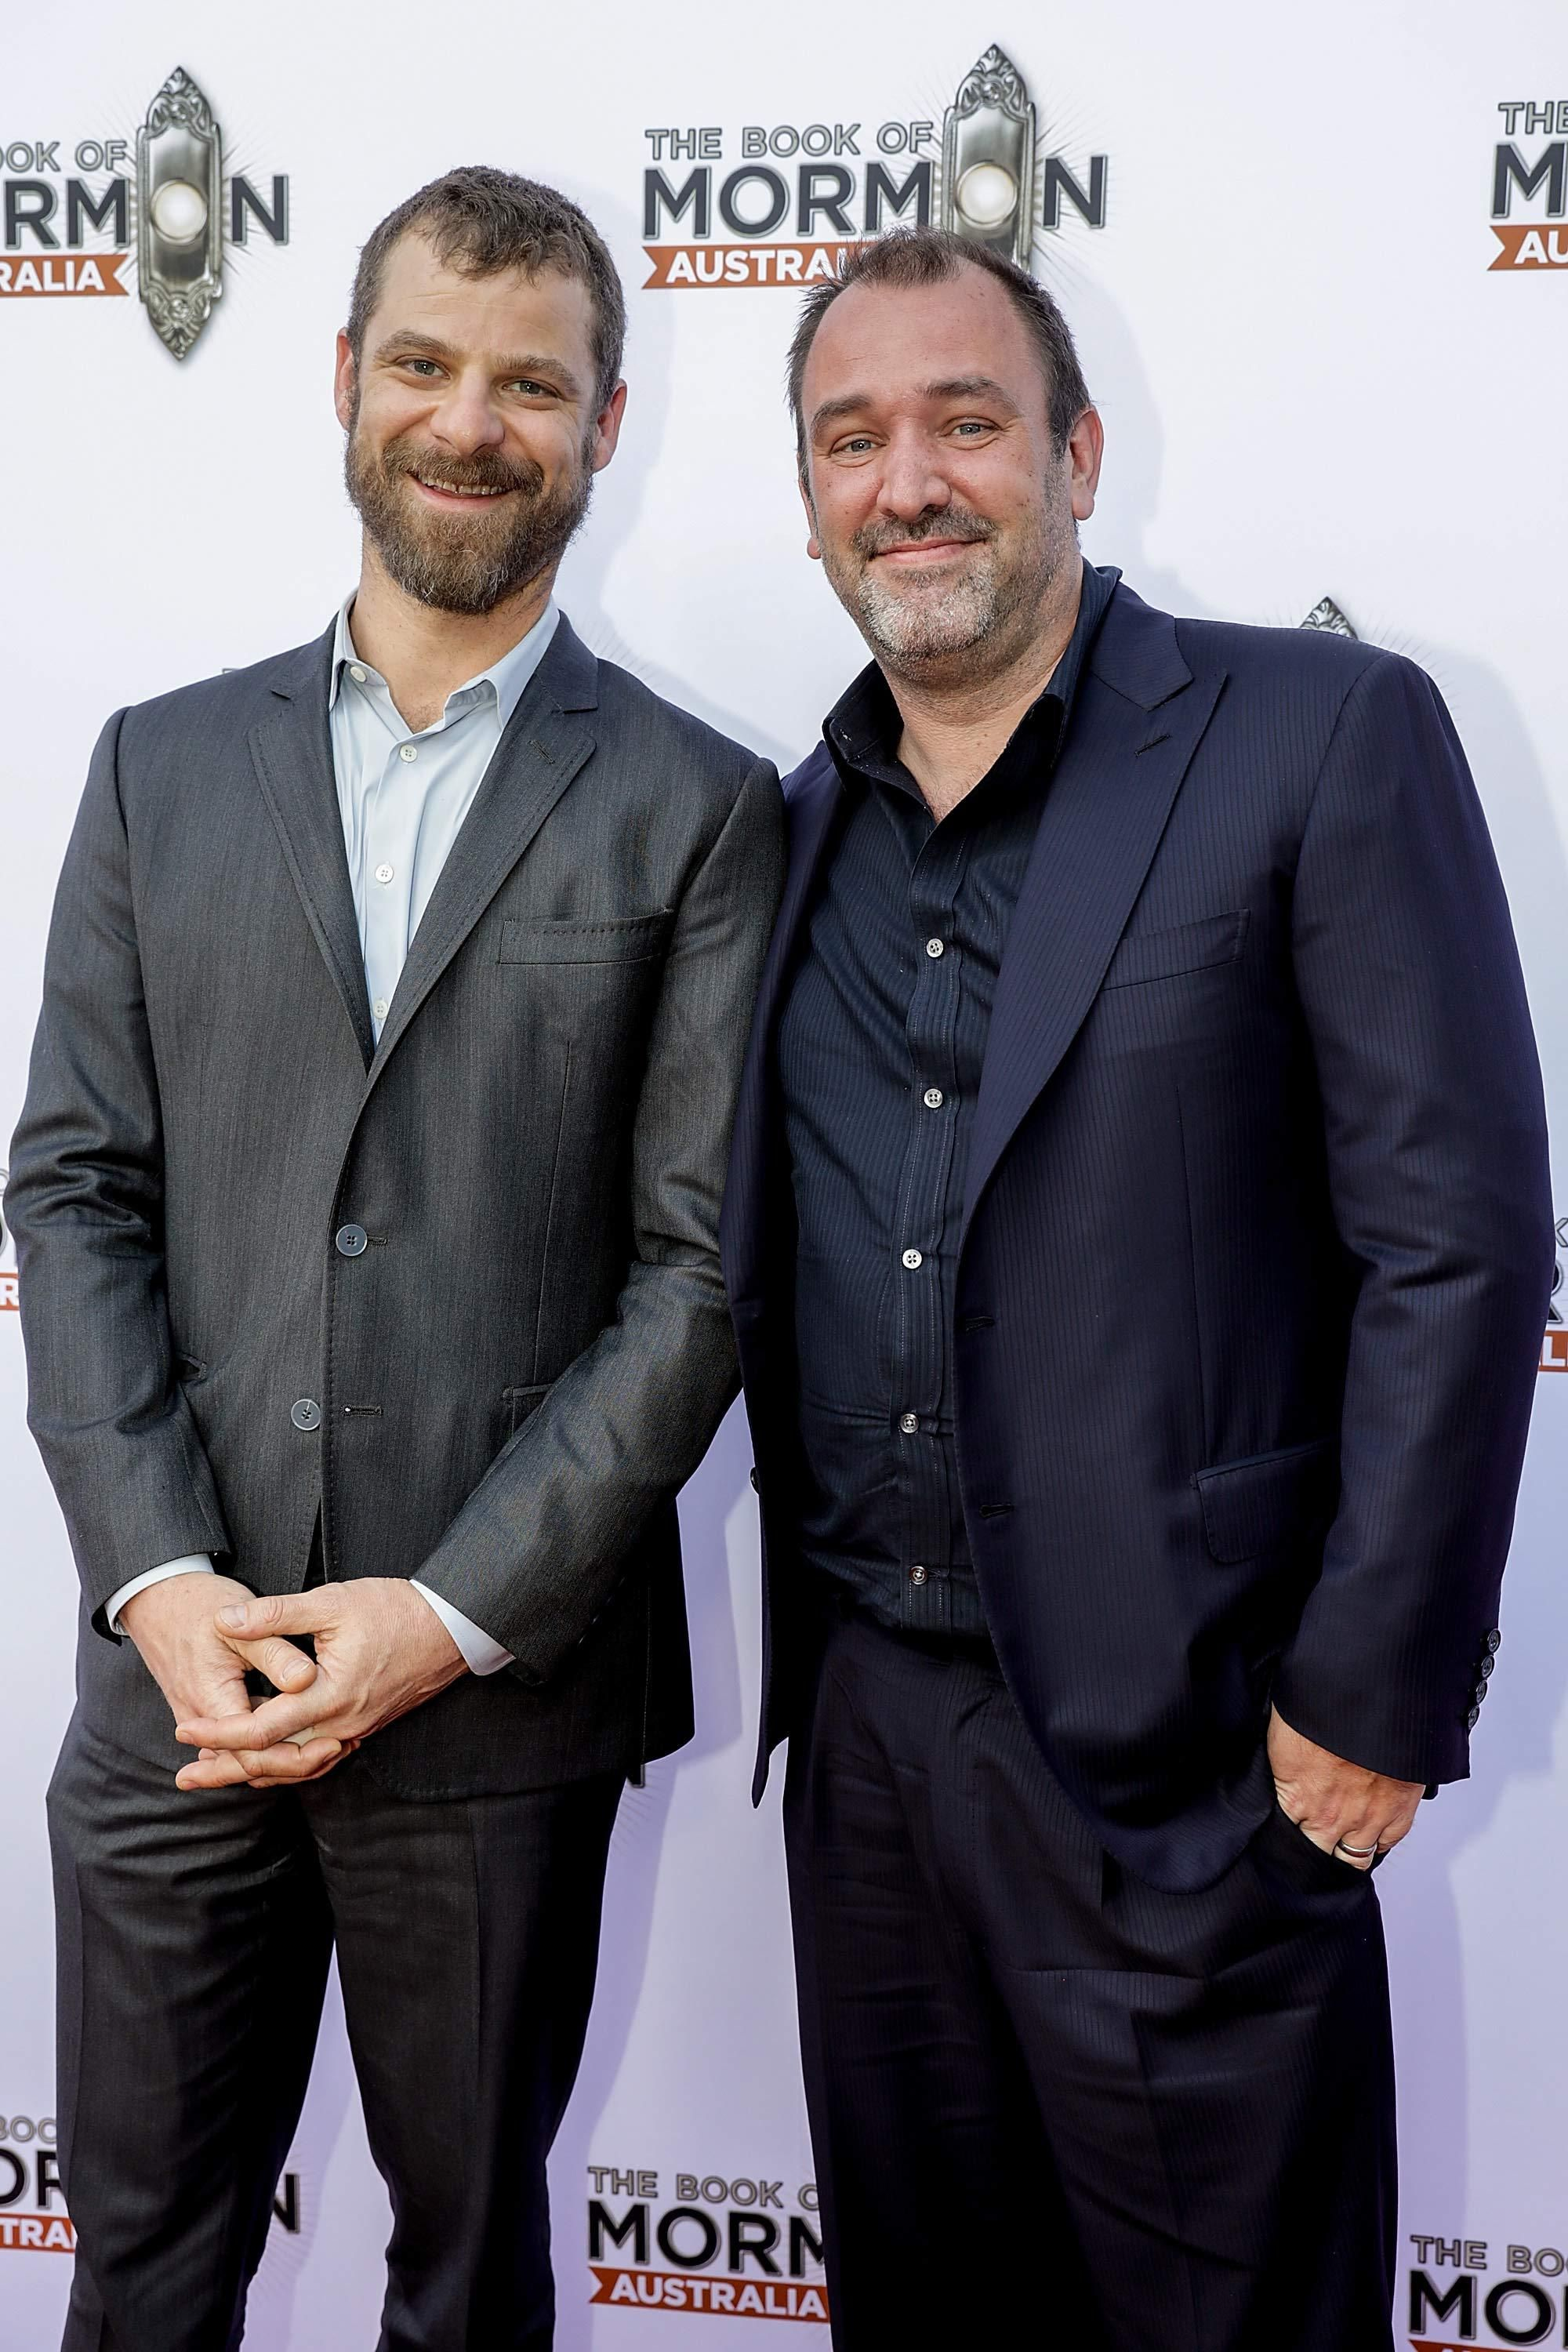 South Park creators Trey Parker and Matt Stone